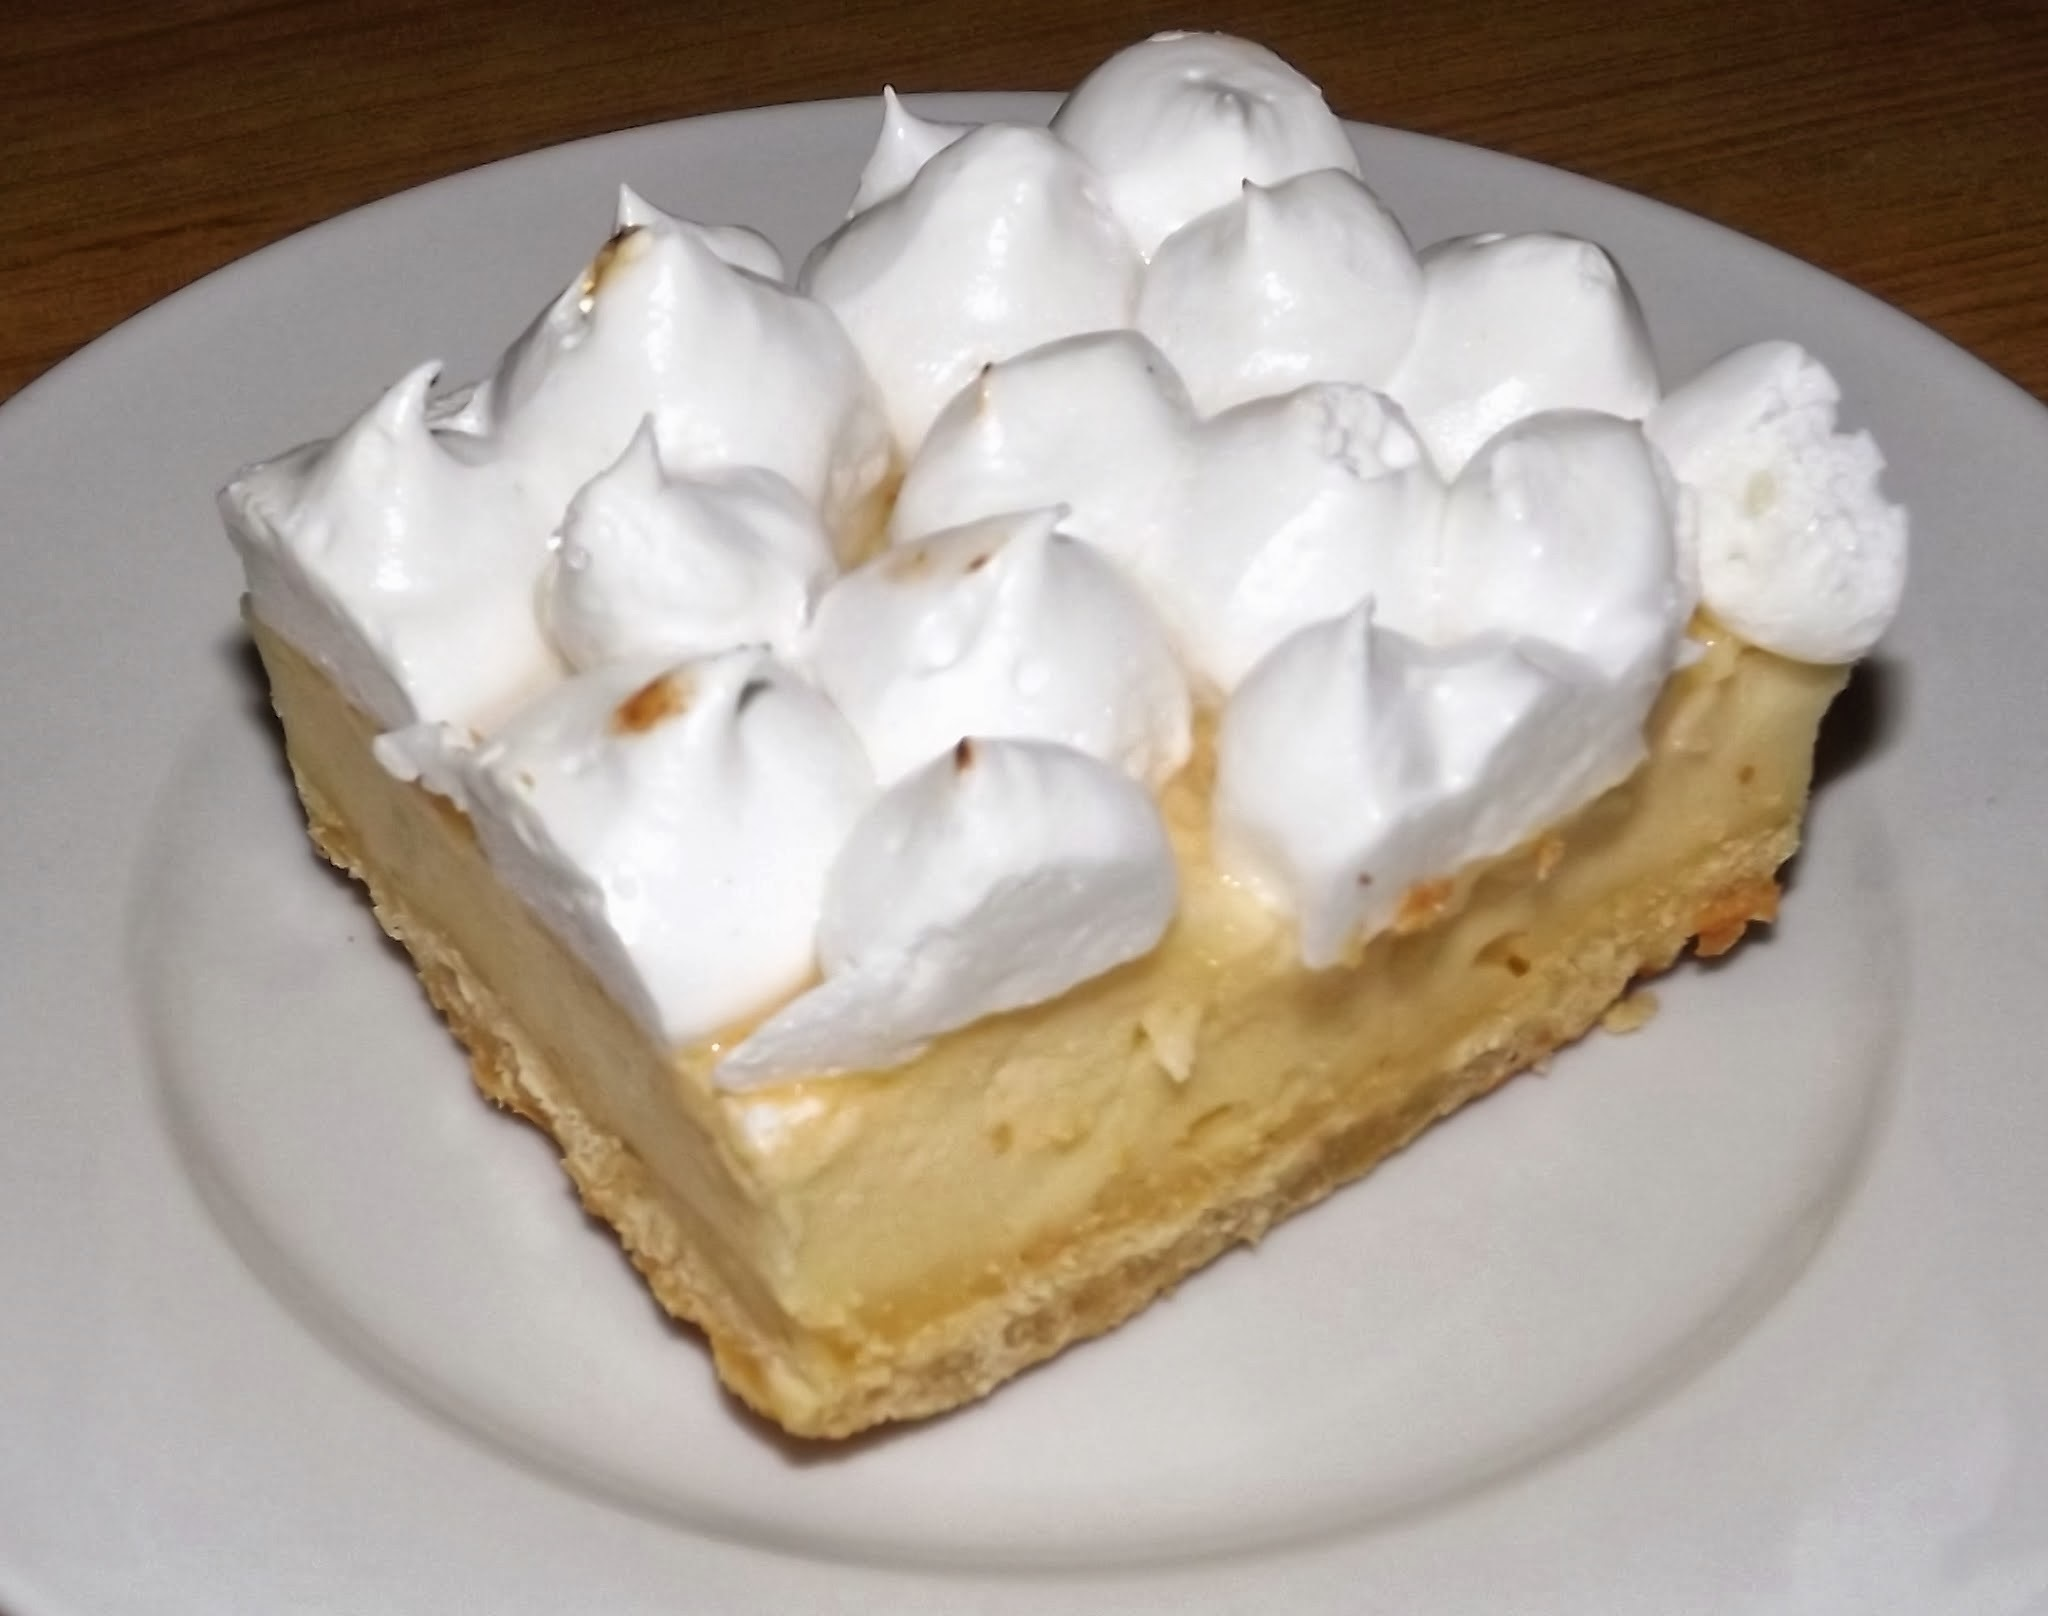 LEMON MERINGUE BARS - BARRITAS DE LIMÓN Y MERENGUE -